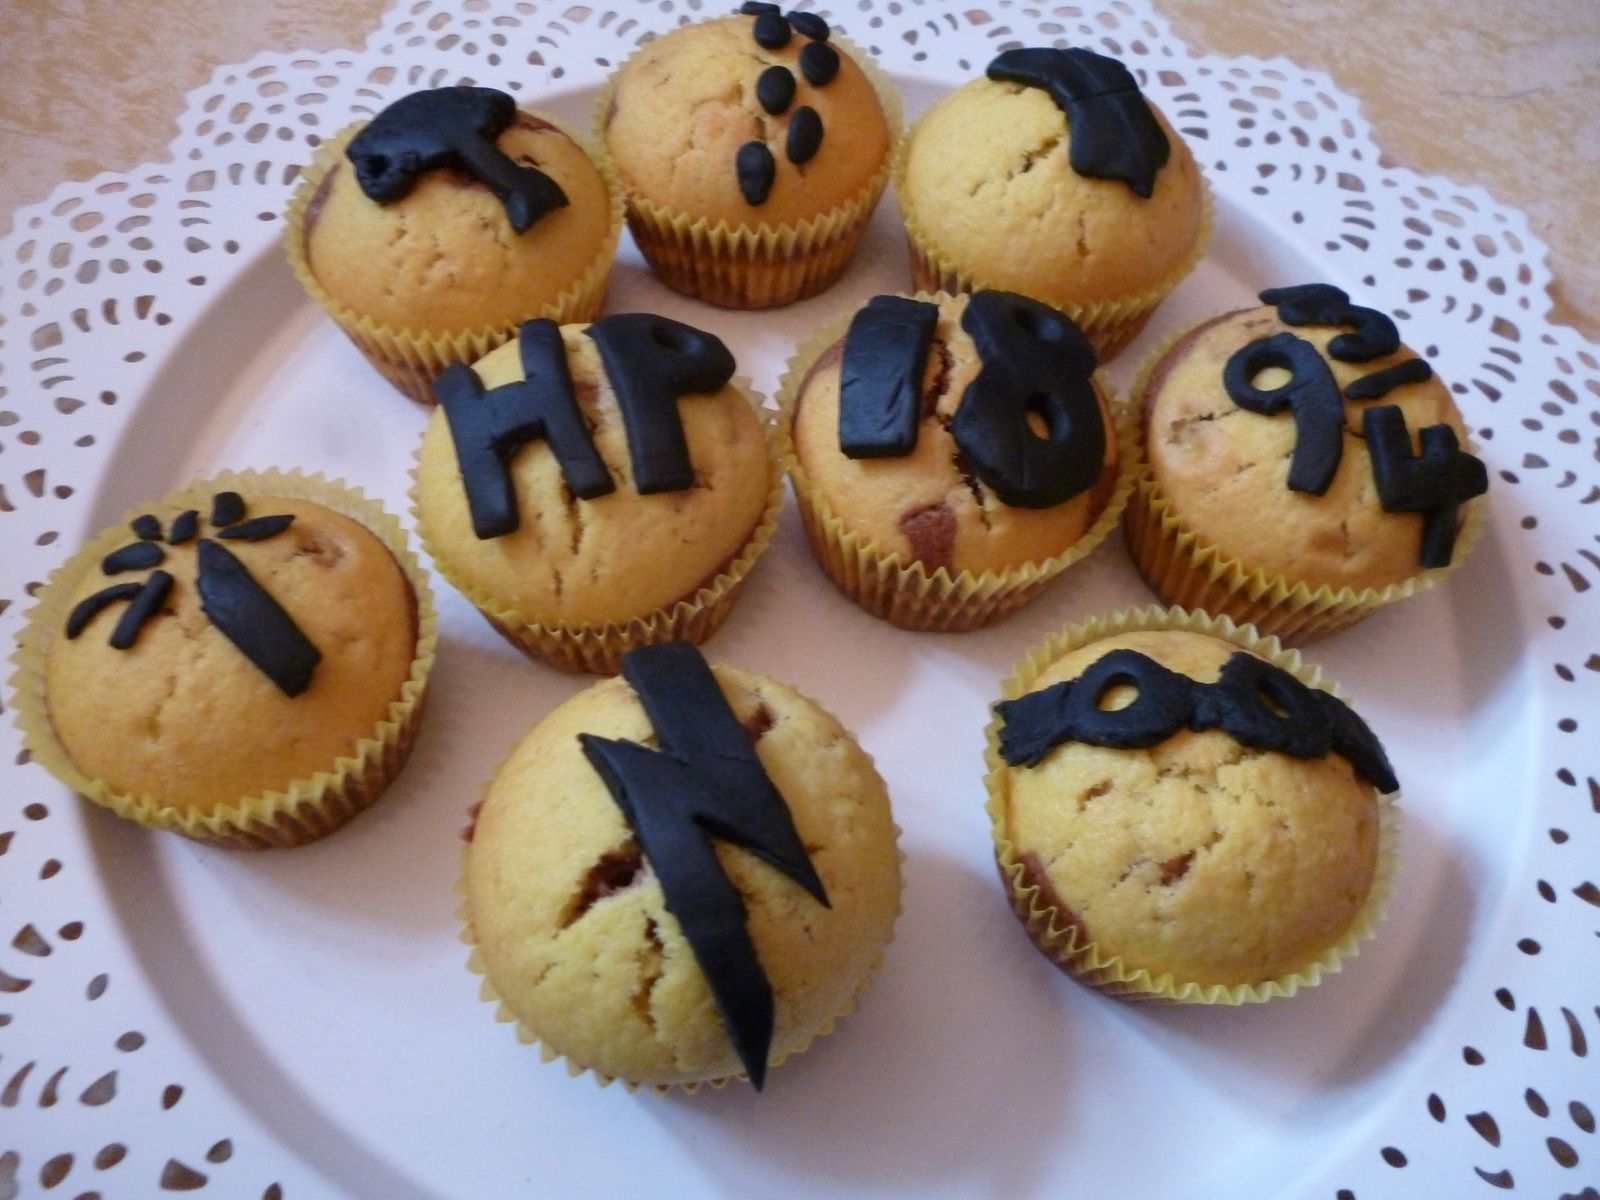 Harry Potter inspirierte Muffins!